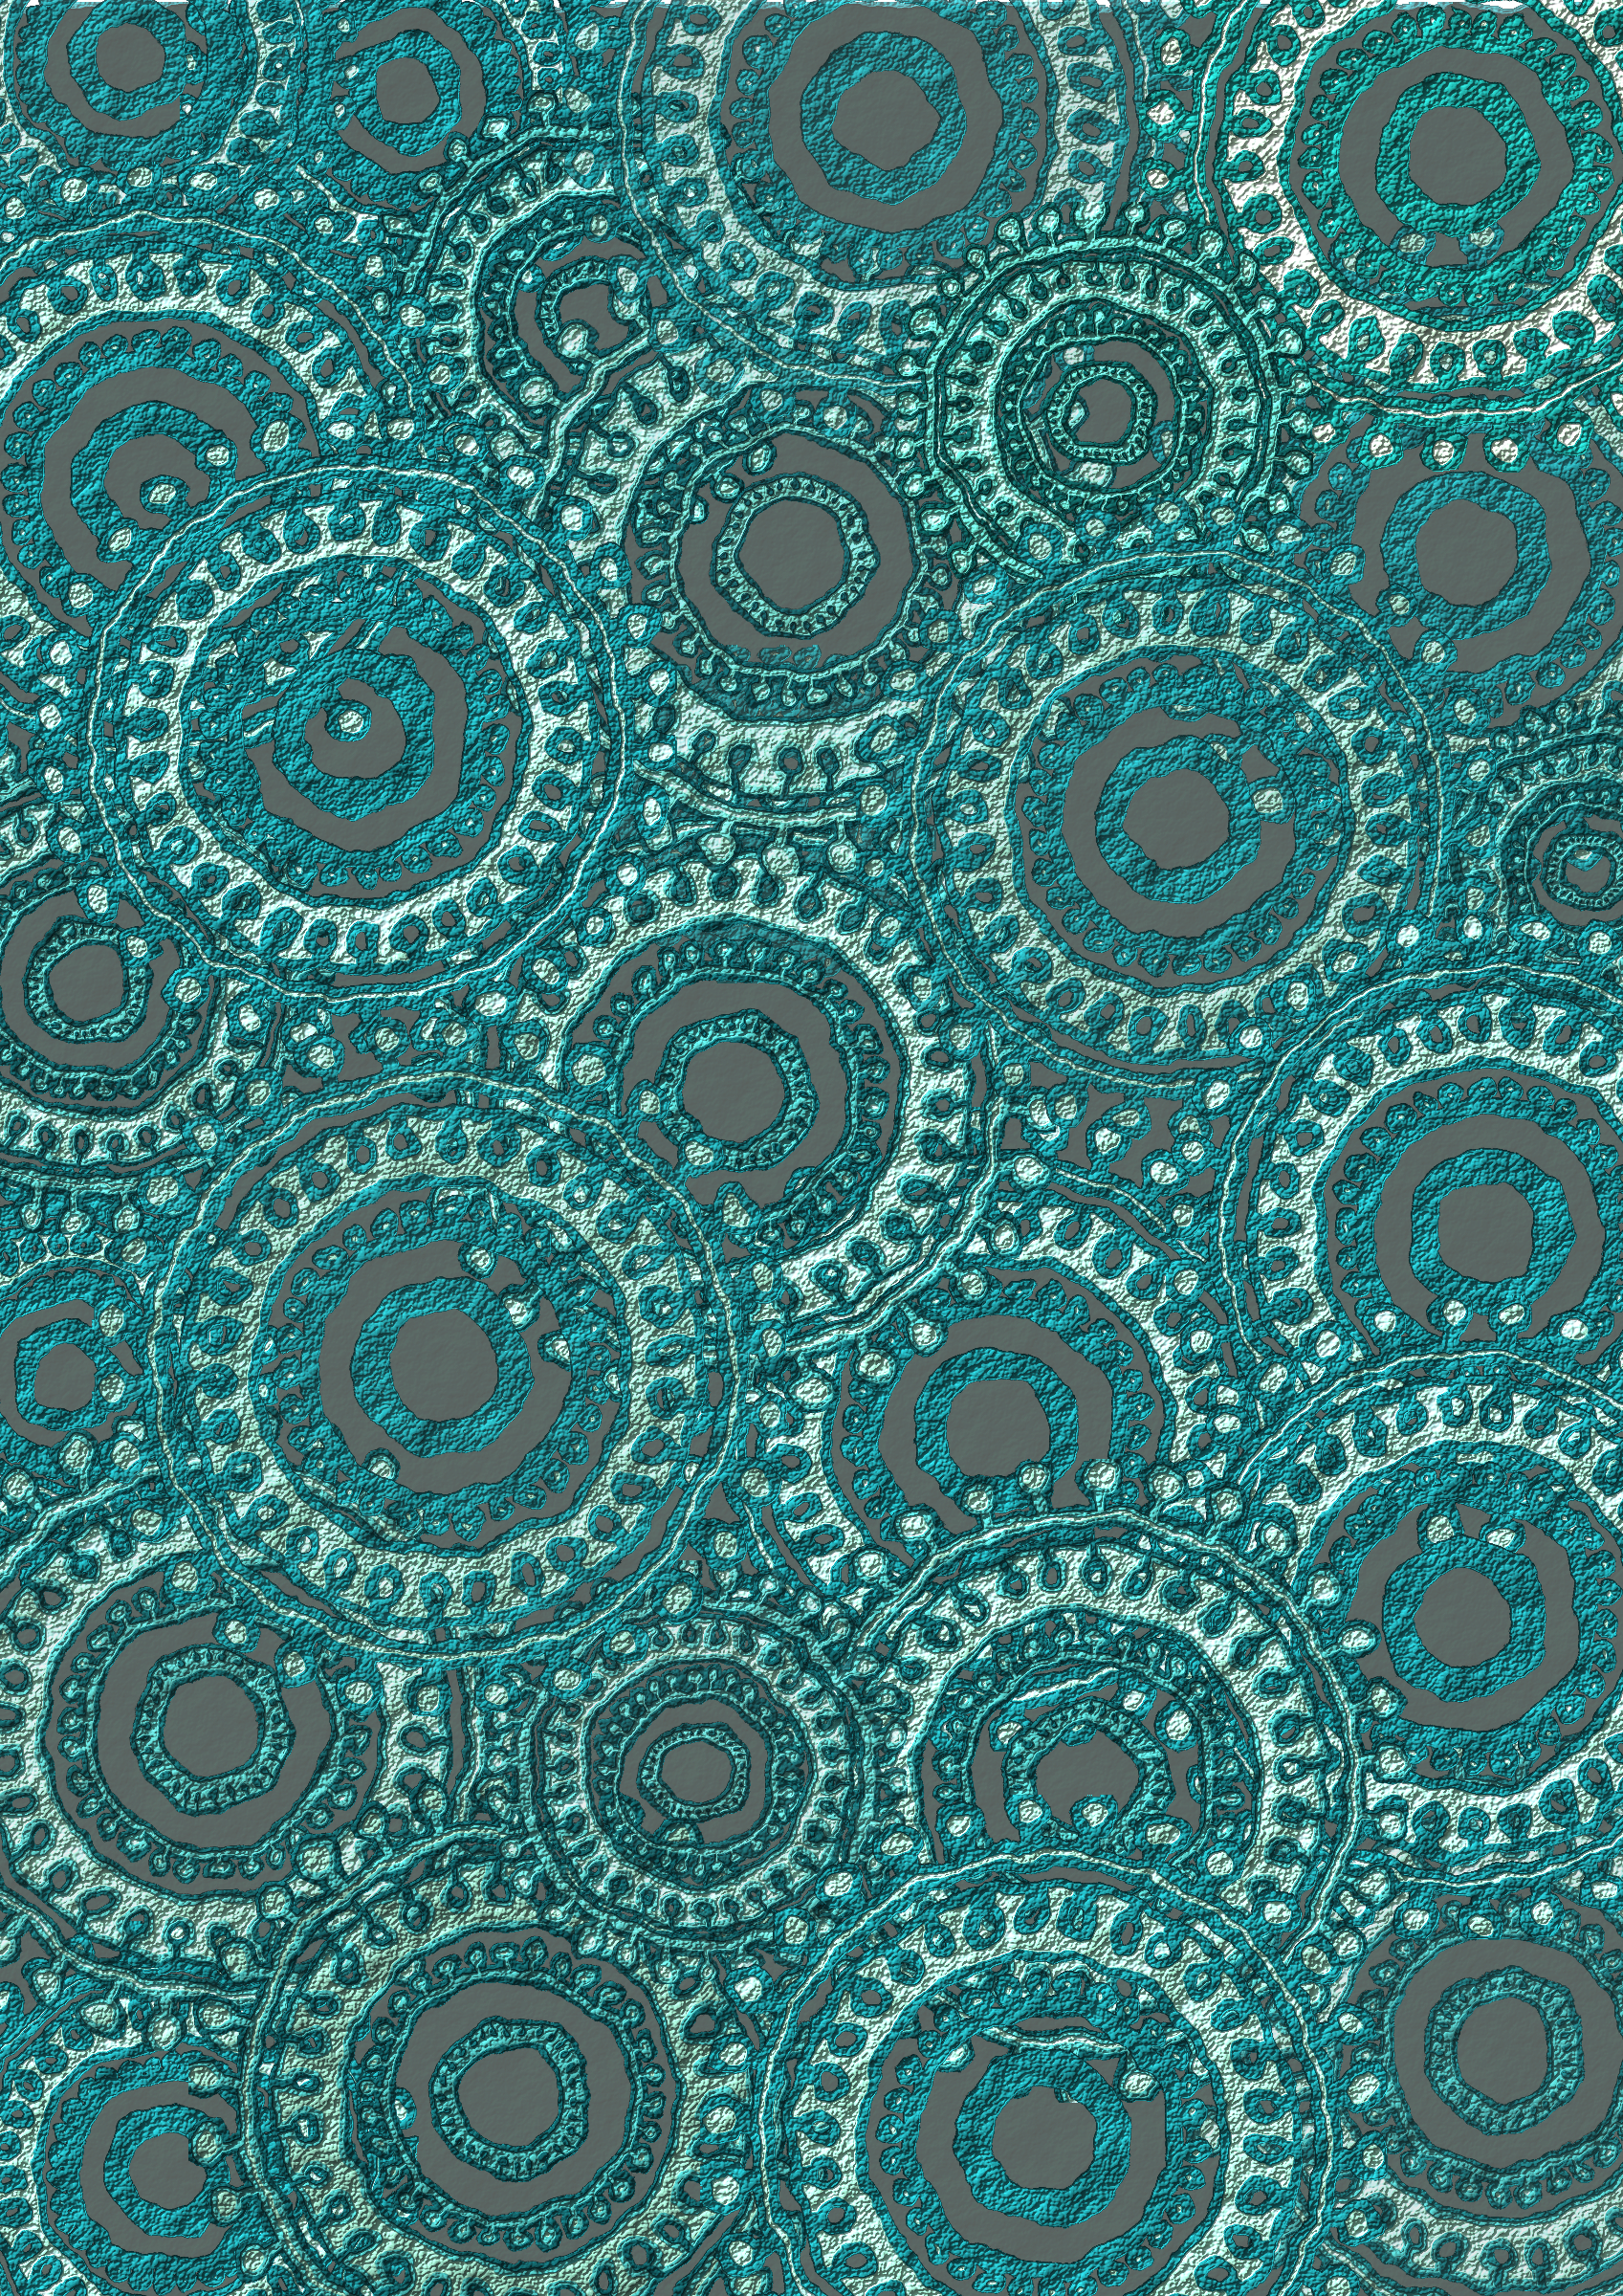 Teal Circle Pattern Scrapbook Paper by Lovinglf